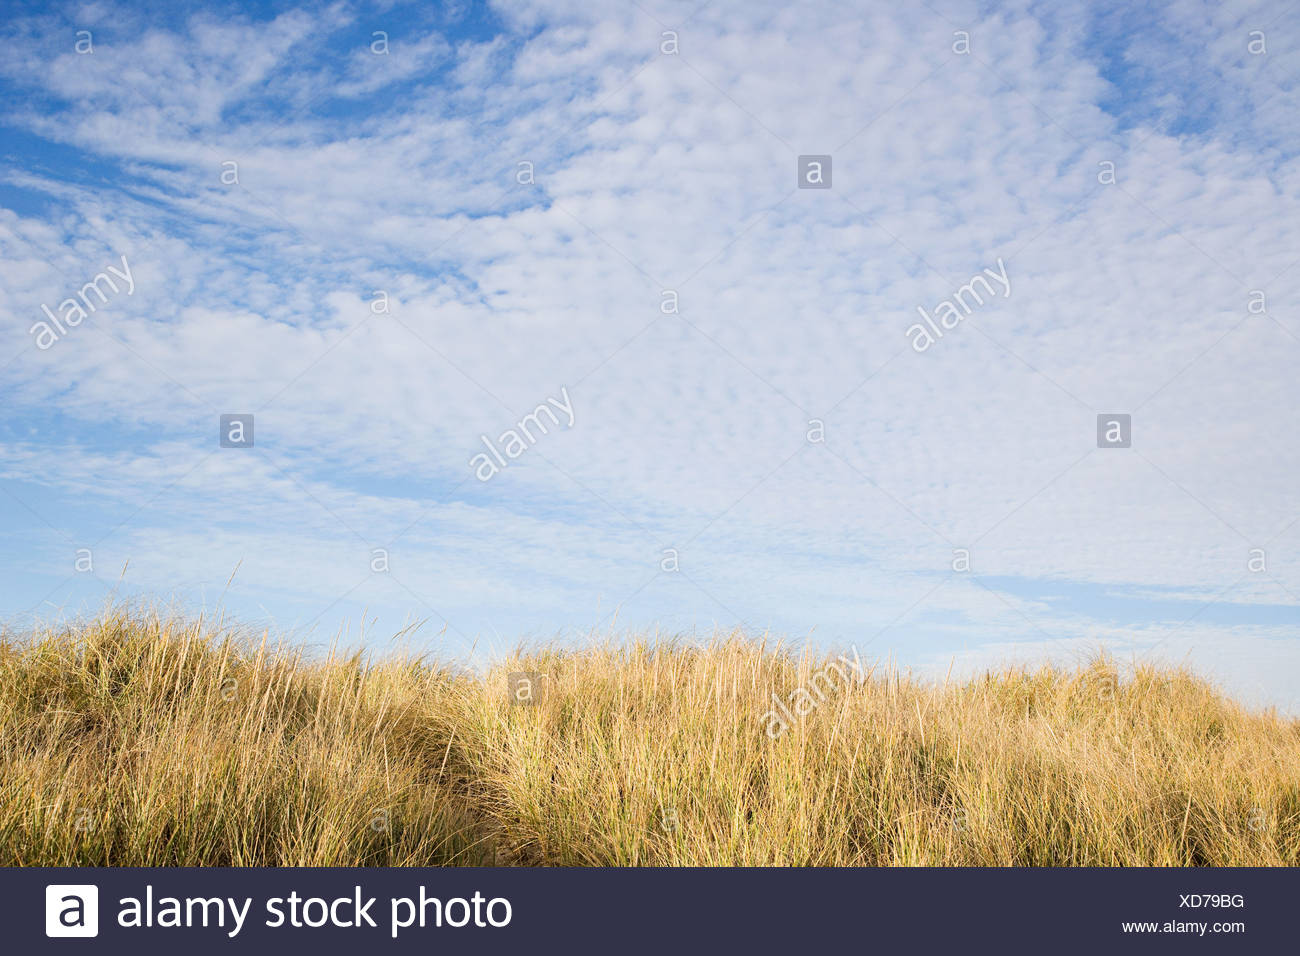 Sky and long grass - Stock Image